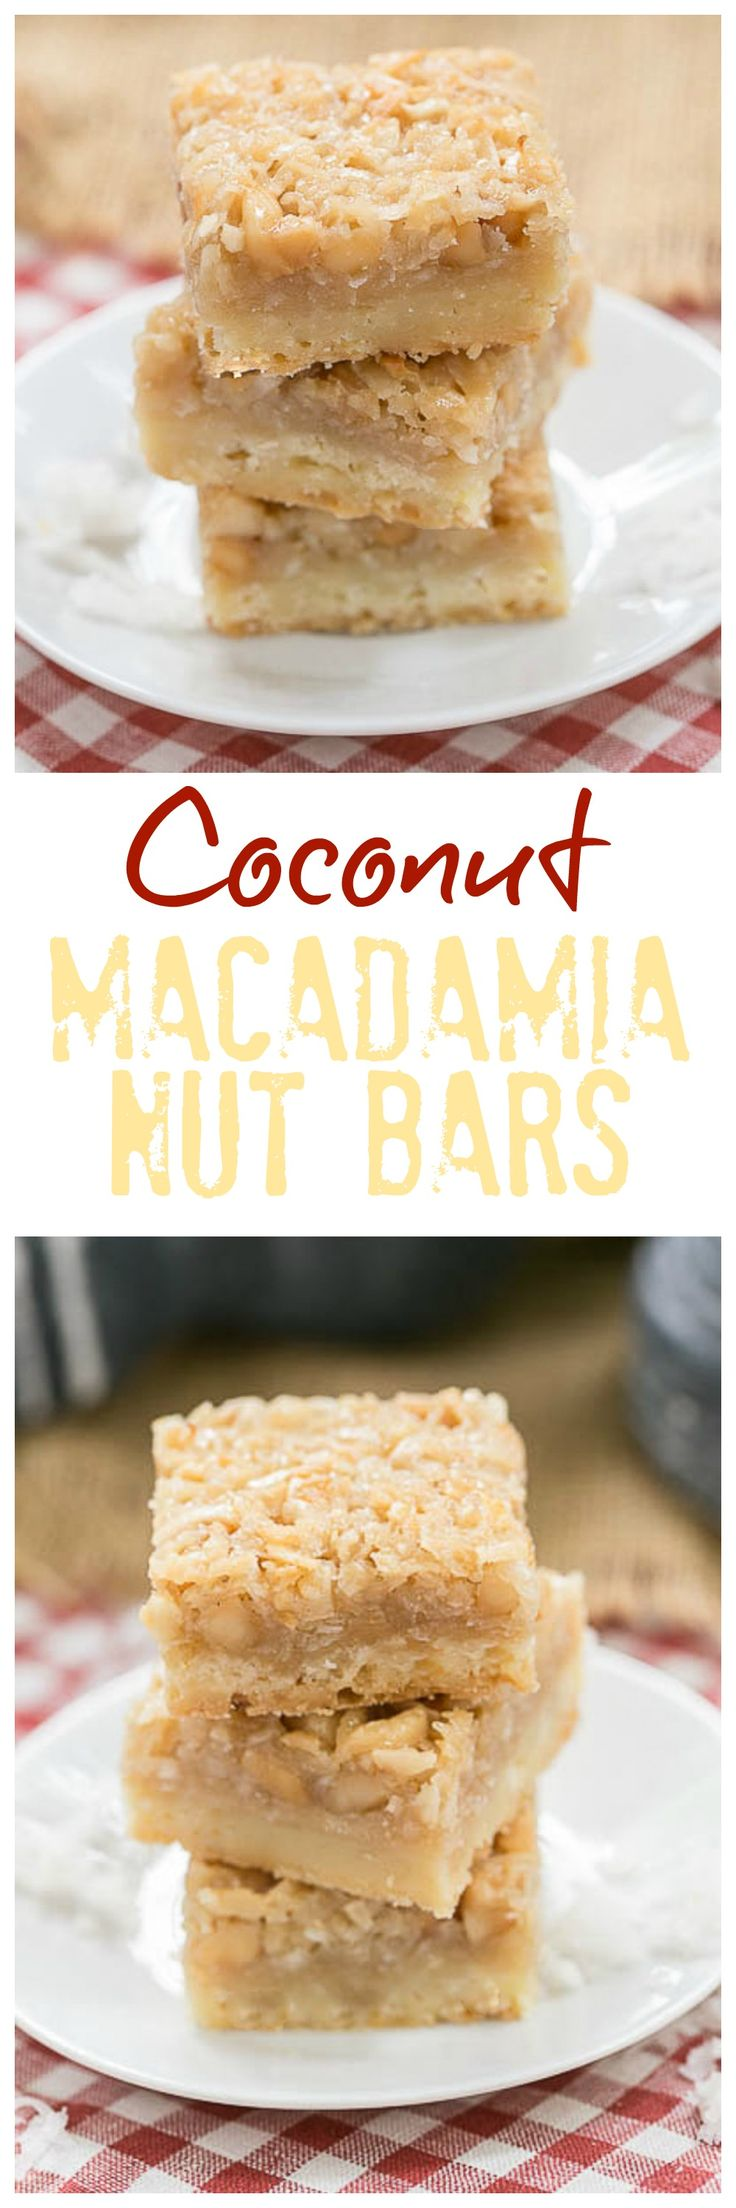 Coconut Macadamia Nut Bars | Coconut lovers' dream bars! @lizzydo